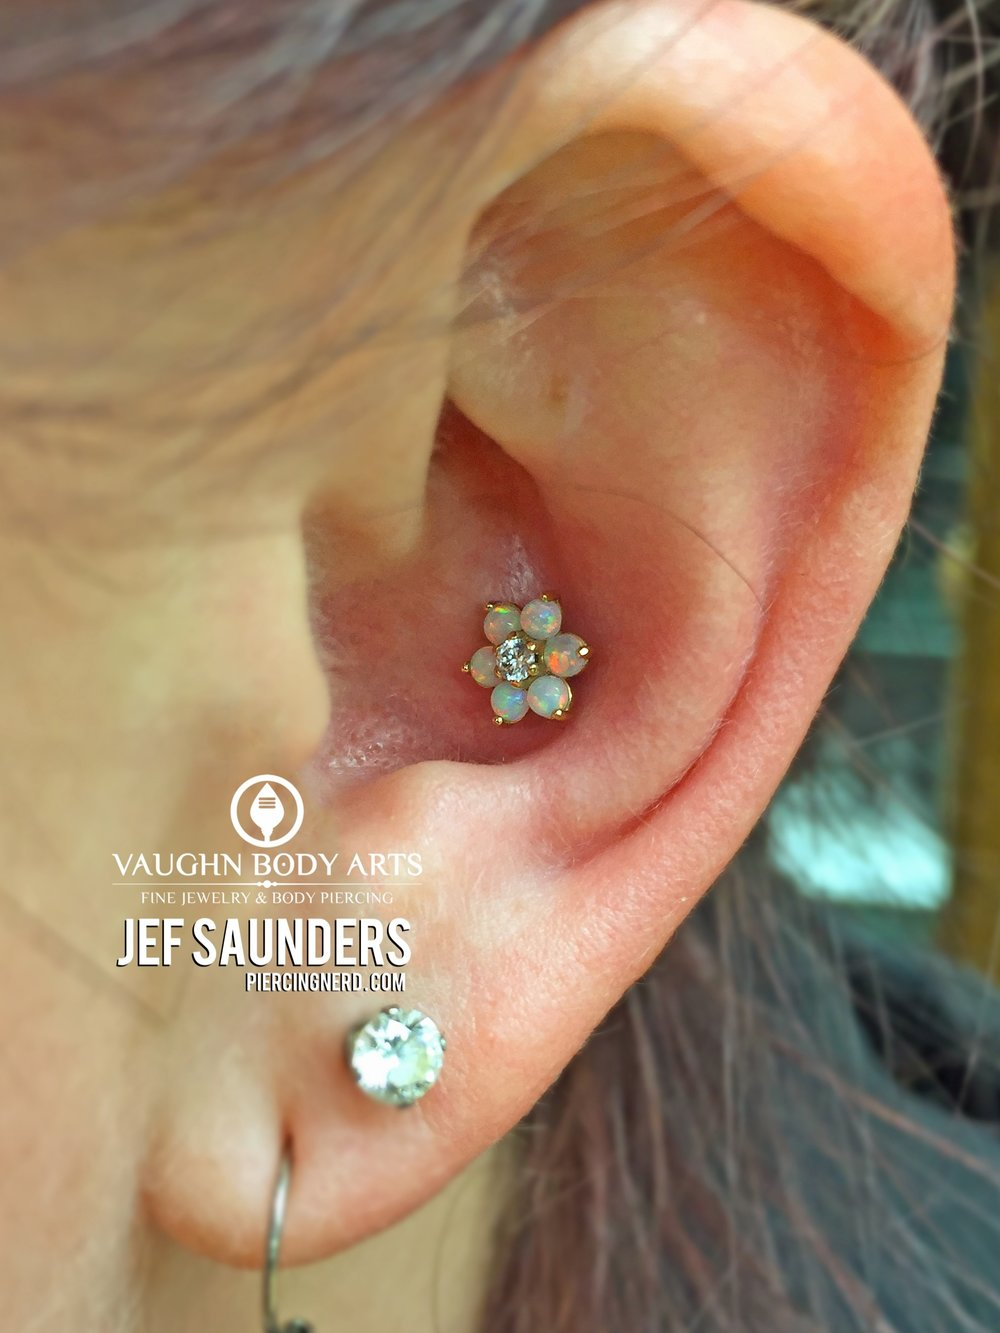 Conch piercing done by our friend and guest piercer Jef Saunders featuring an 18k yellow gold flower from Anatometal.